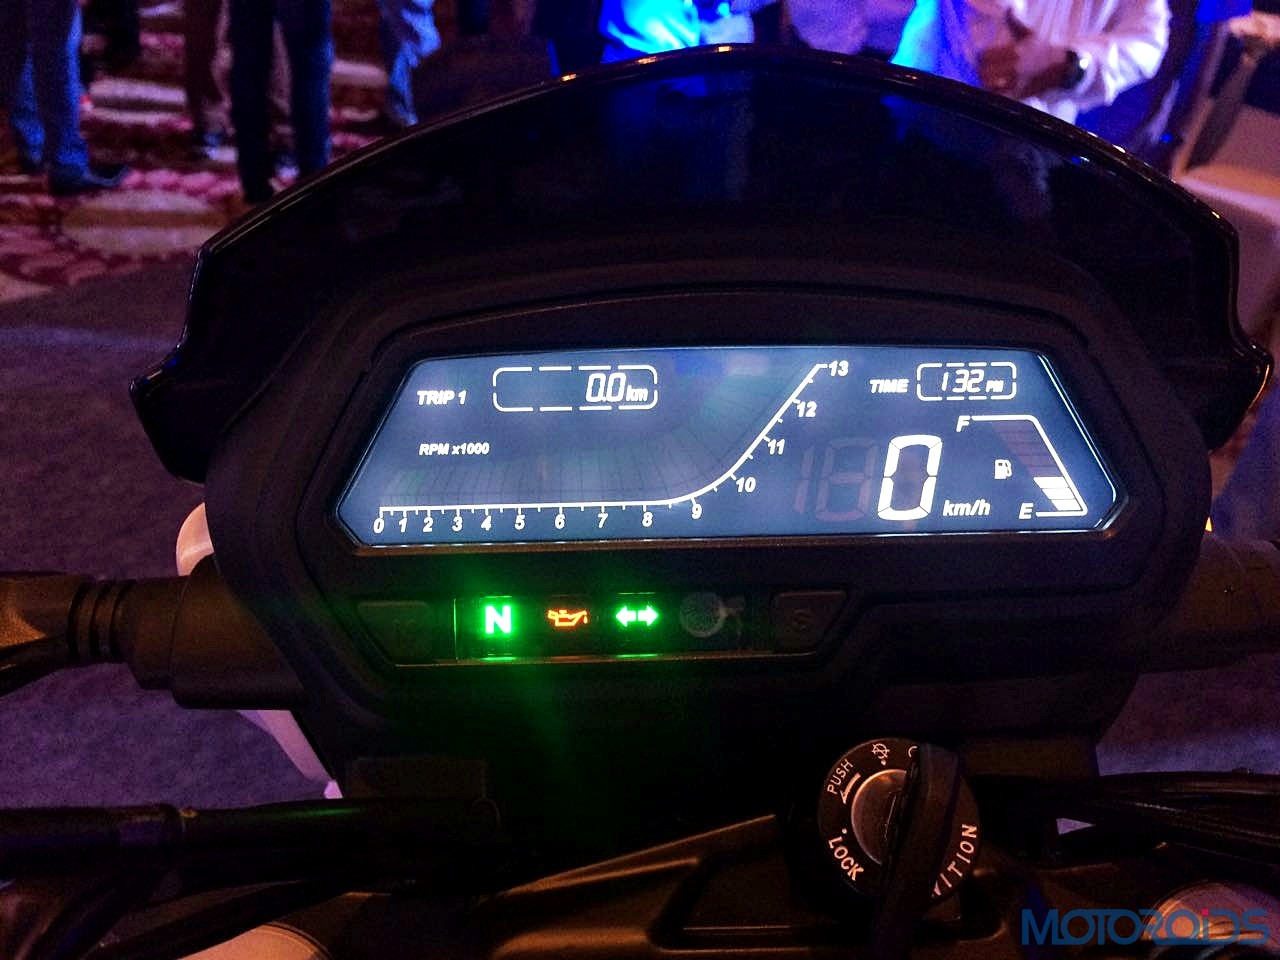 bajaj-Dominar-India-Launch-Images-13